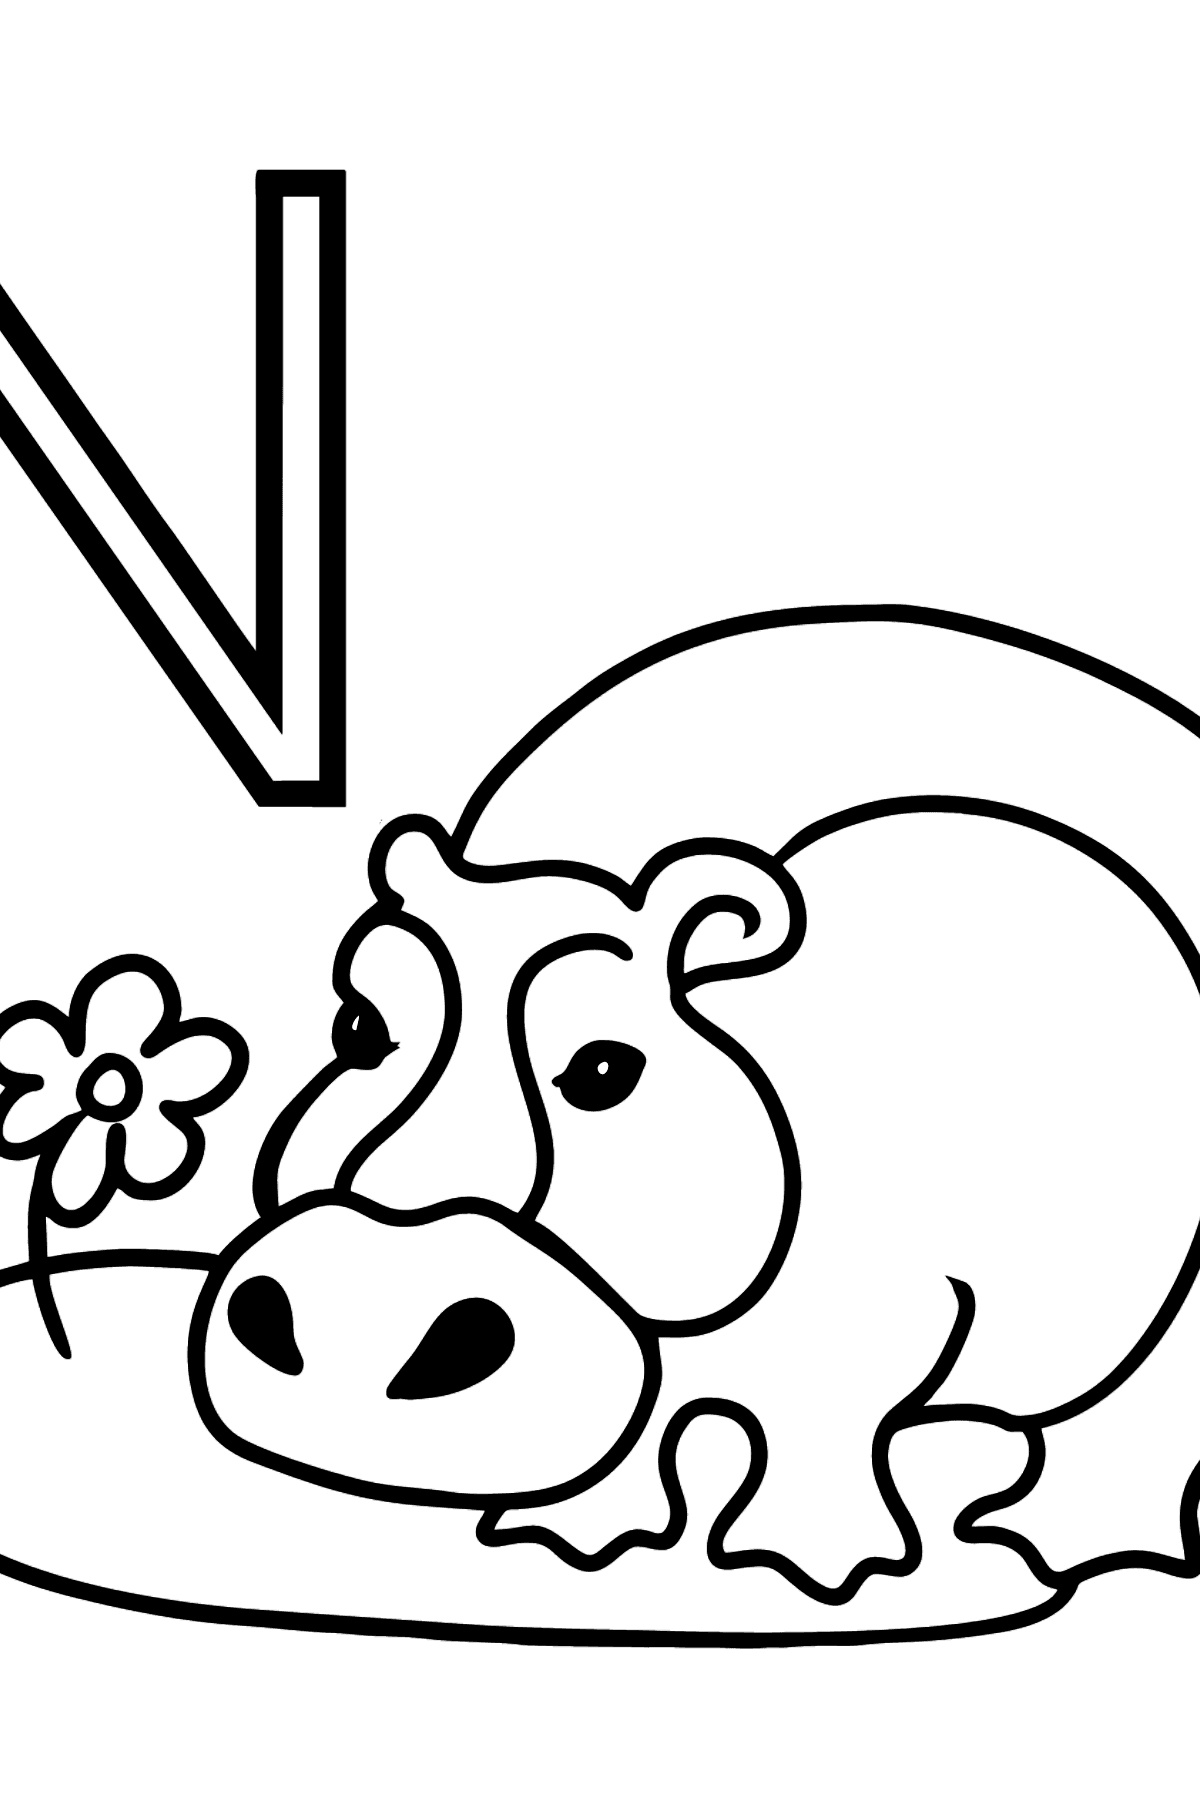 German Letter N coloring pages - NILPFERD - Coloring Pages for Kids